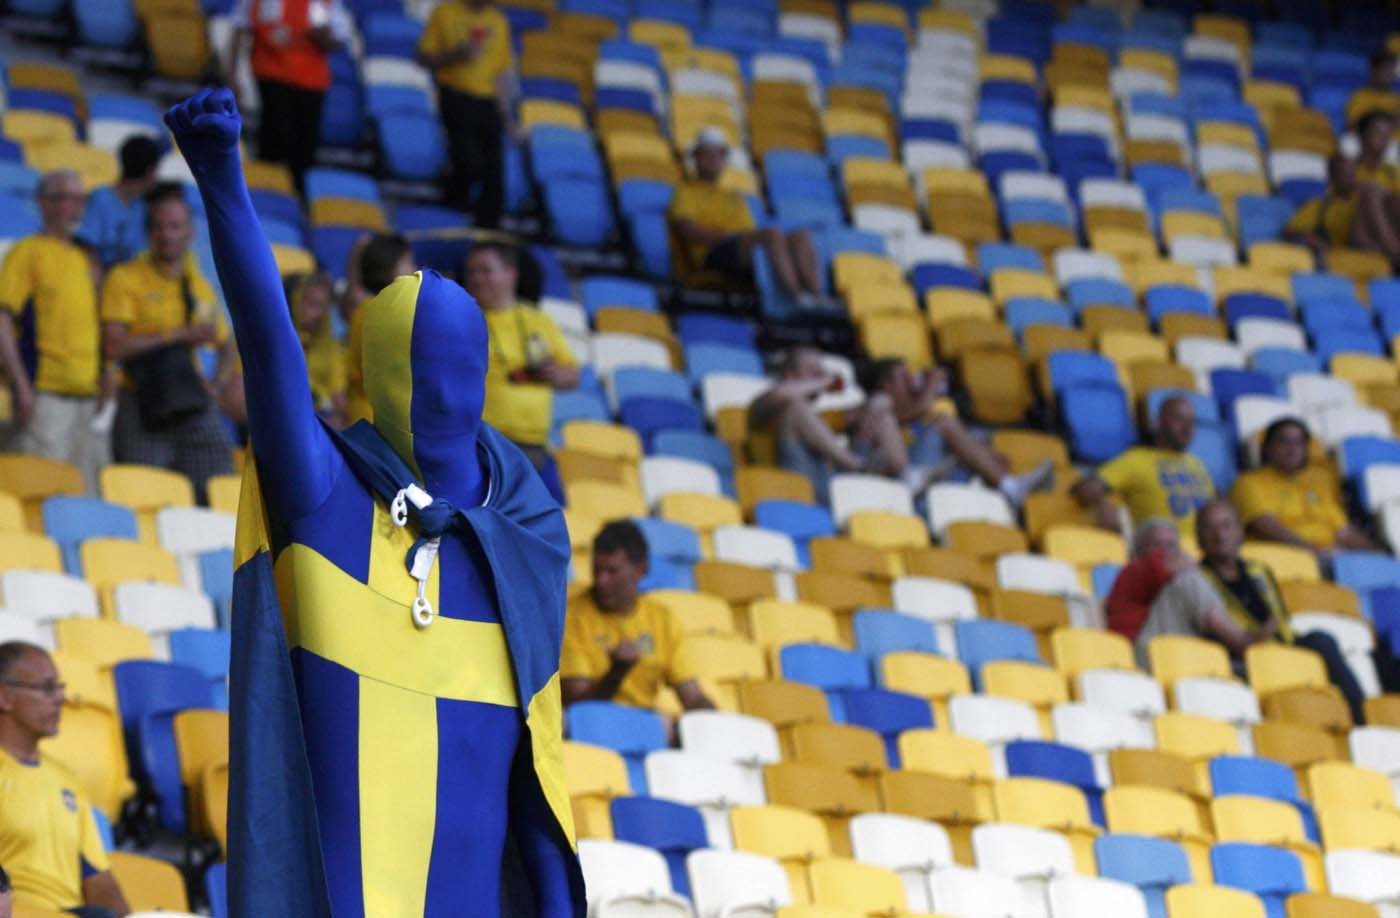 A Sweden's fan wears the outfit in the national flag shape and colors as he cheers before the Group D Euro 2012 soccer match against France at the Olympic stadium in Kiev, June 19, 2012. (Alexander Demianchuk/Reuters)